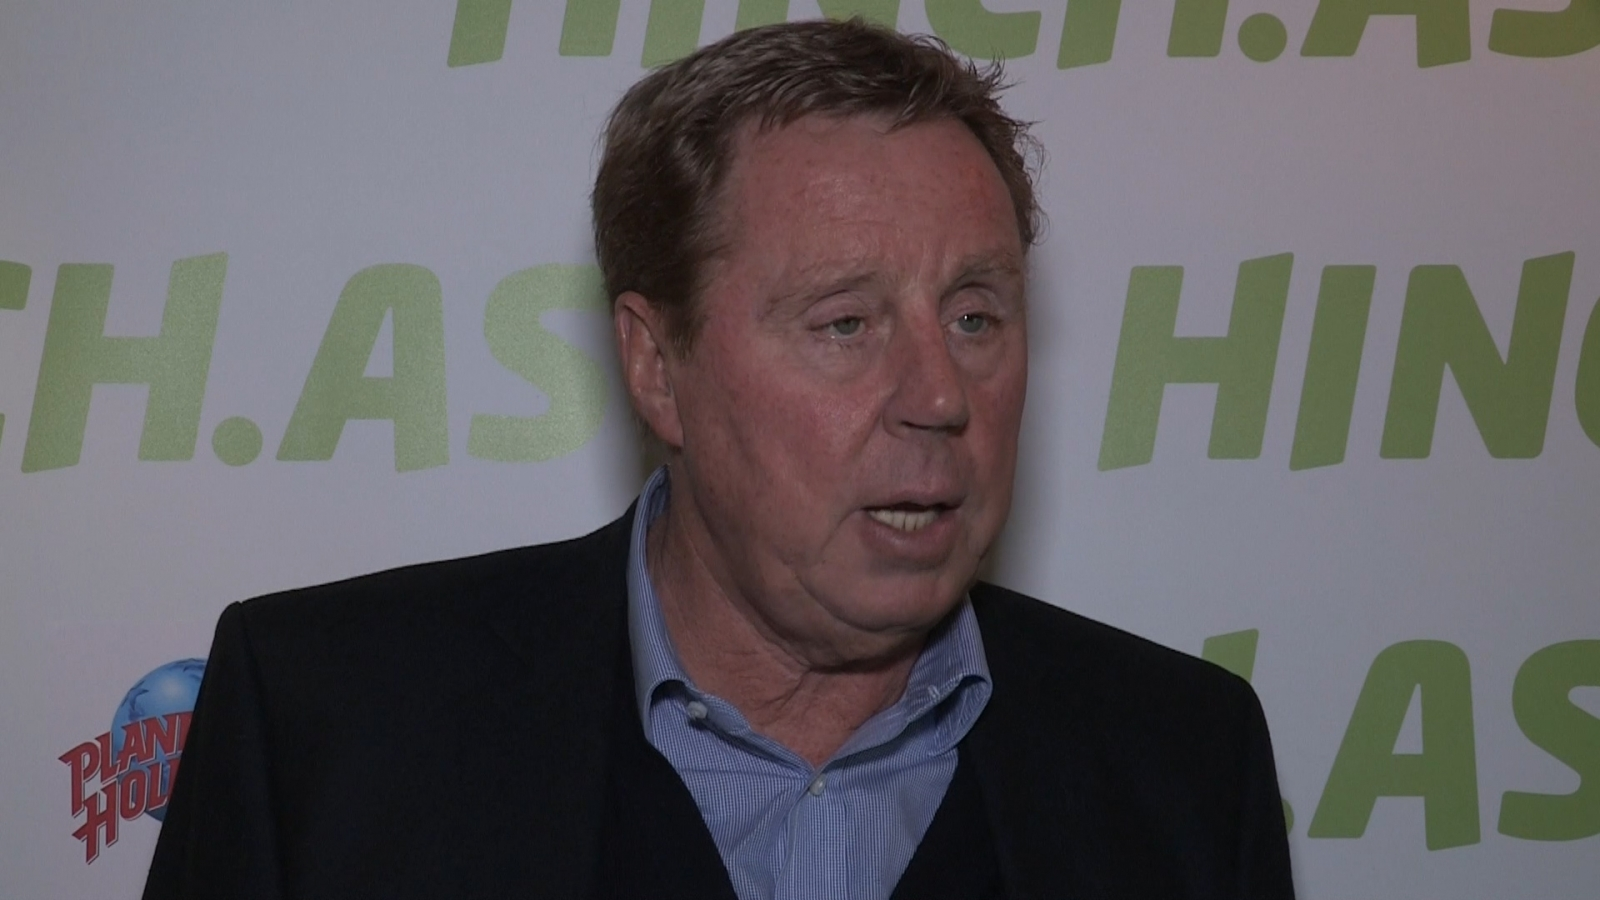 Harry Redknapp: Harry Kane has been the best Premier League player this season